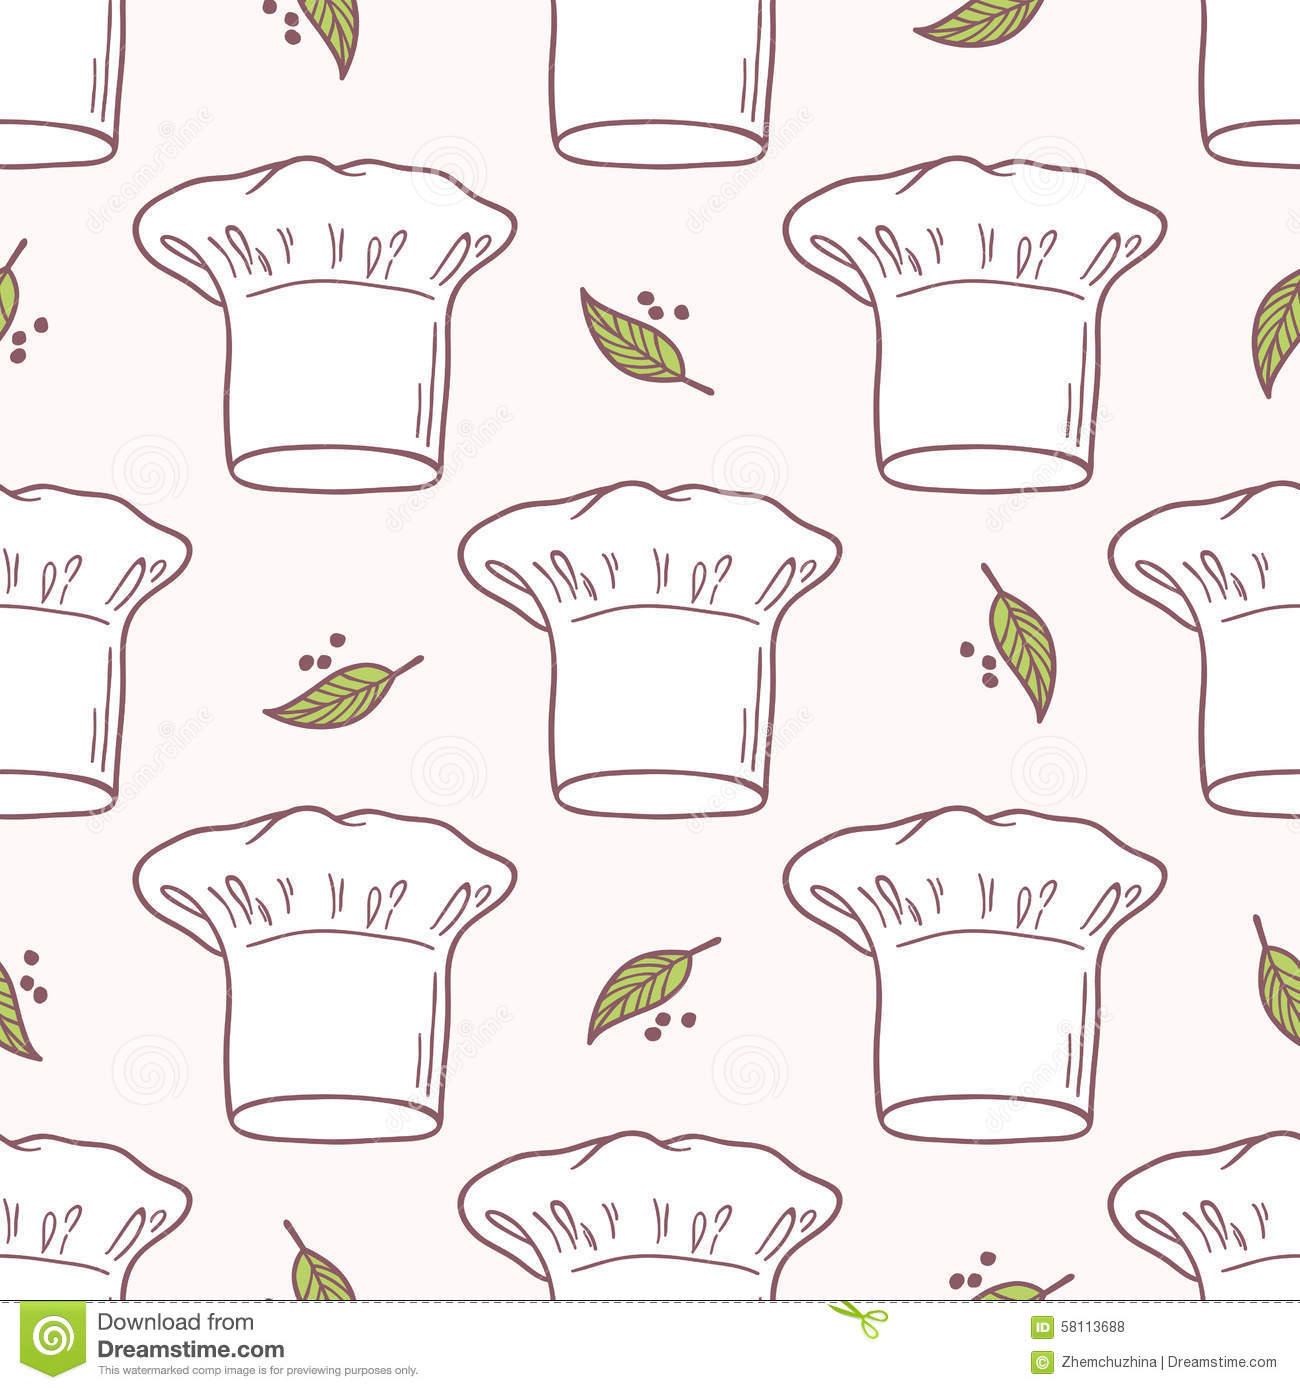 7973ba2cbfd Seamless pattern with hand drawn chef hat. Kitchen background. Vector  illustration